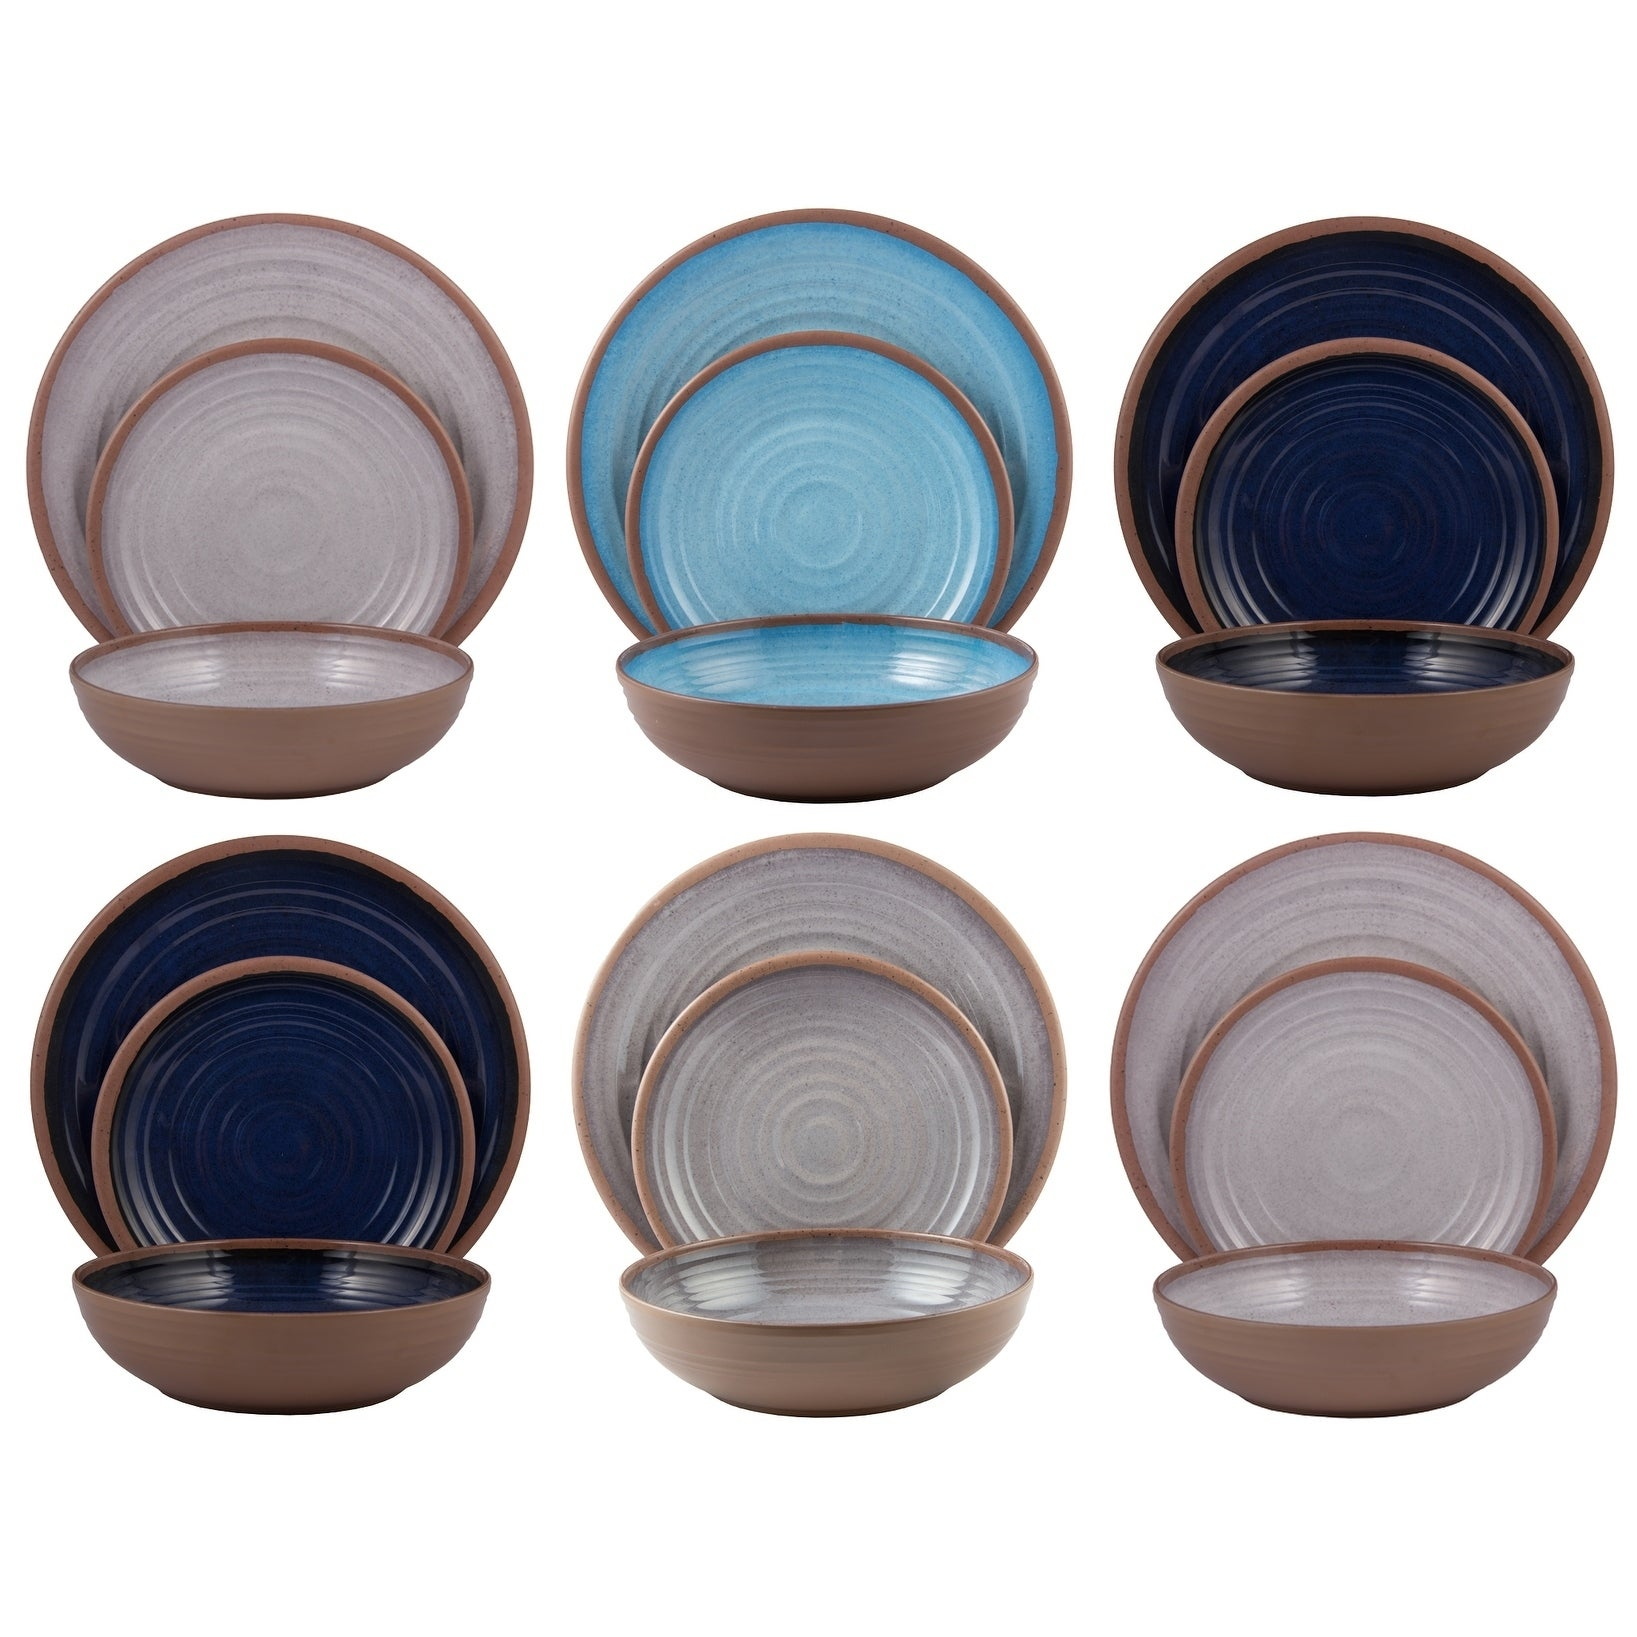 Dinner Plate 6 Each Clay Collection   Shatter-Proof and Chip-Resistant Melamine Plates and Bowls Salad Plate /& Soup Bowl Melange 18-Piece Melamine Dinnerware Set Color: Light Grey